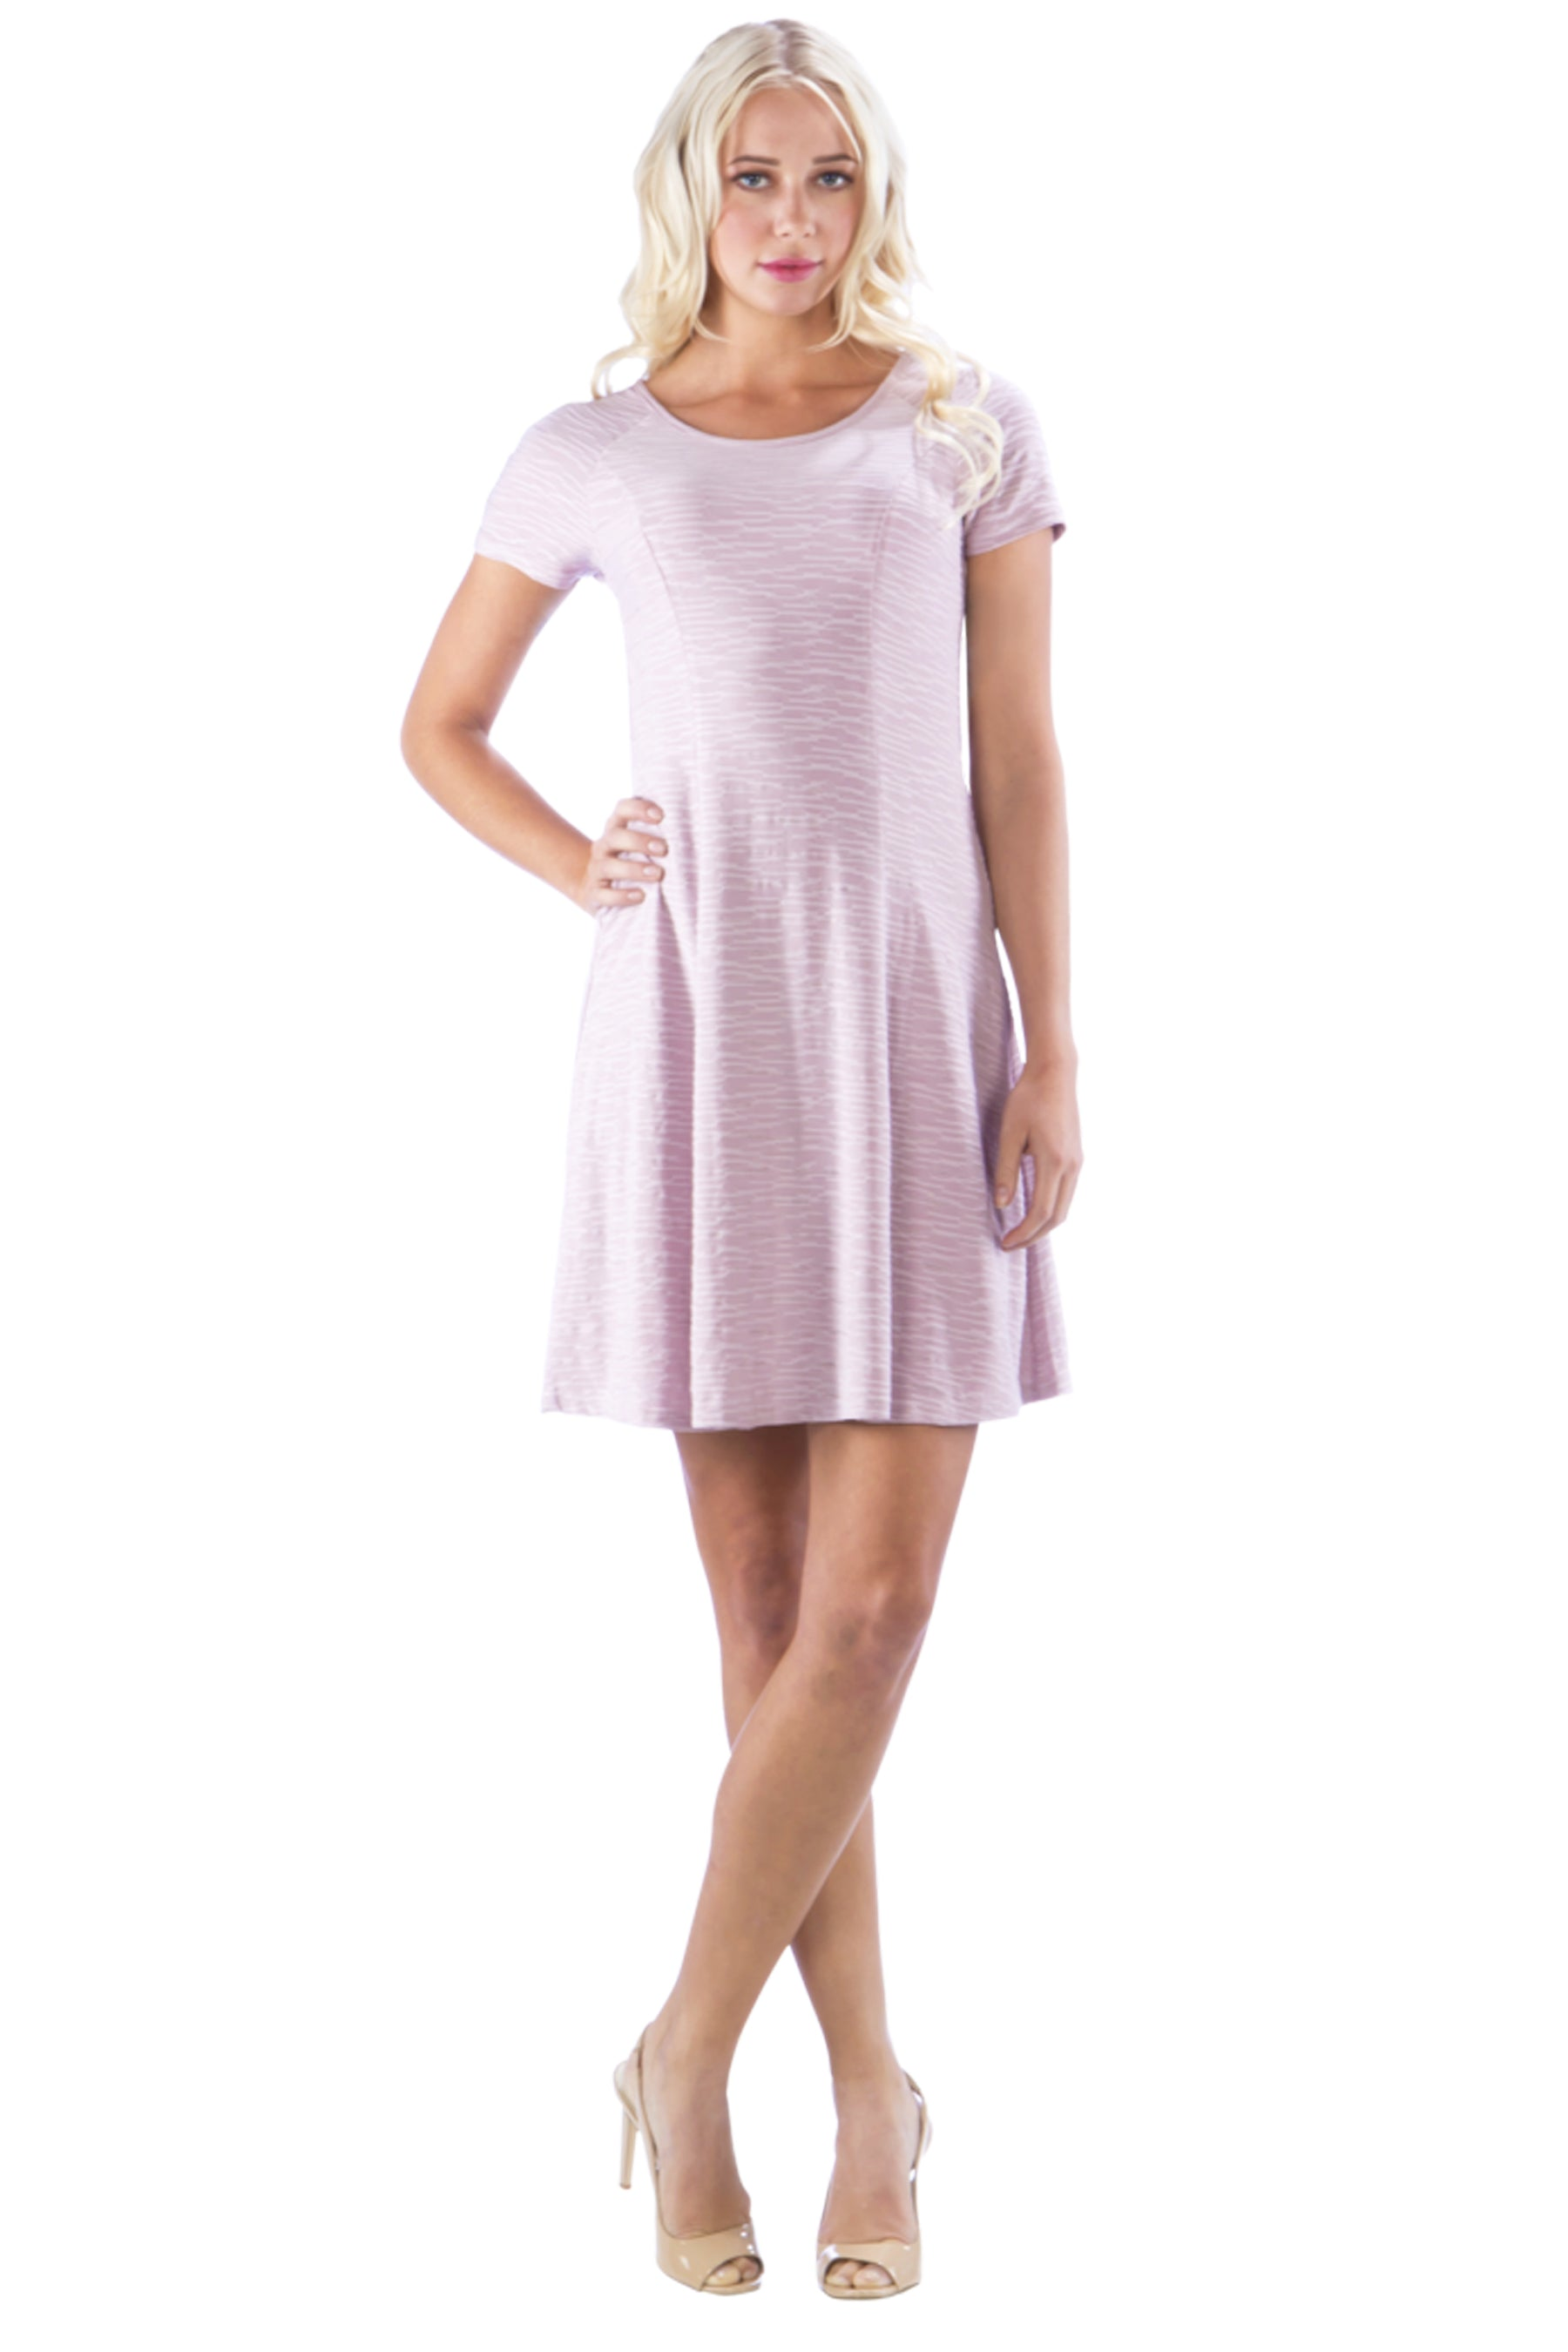 Basic Scoop Neck Textured Dress with Princess Seams